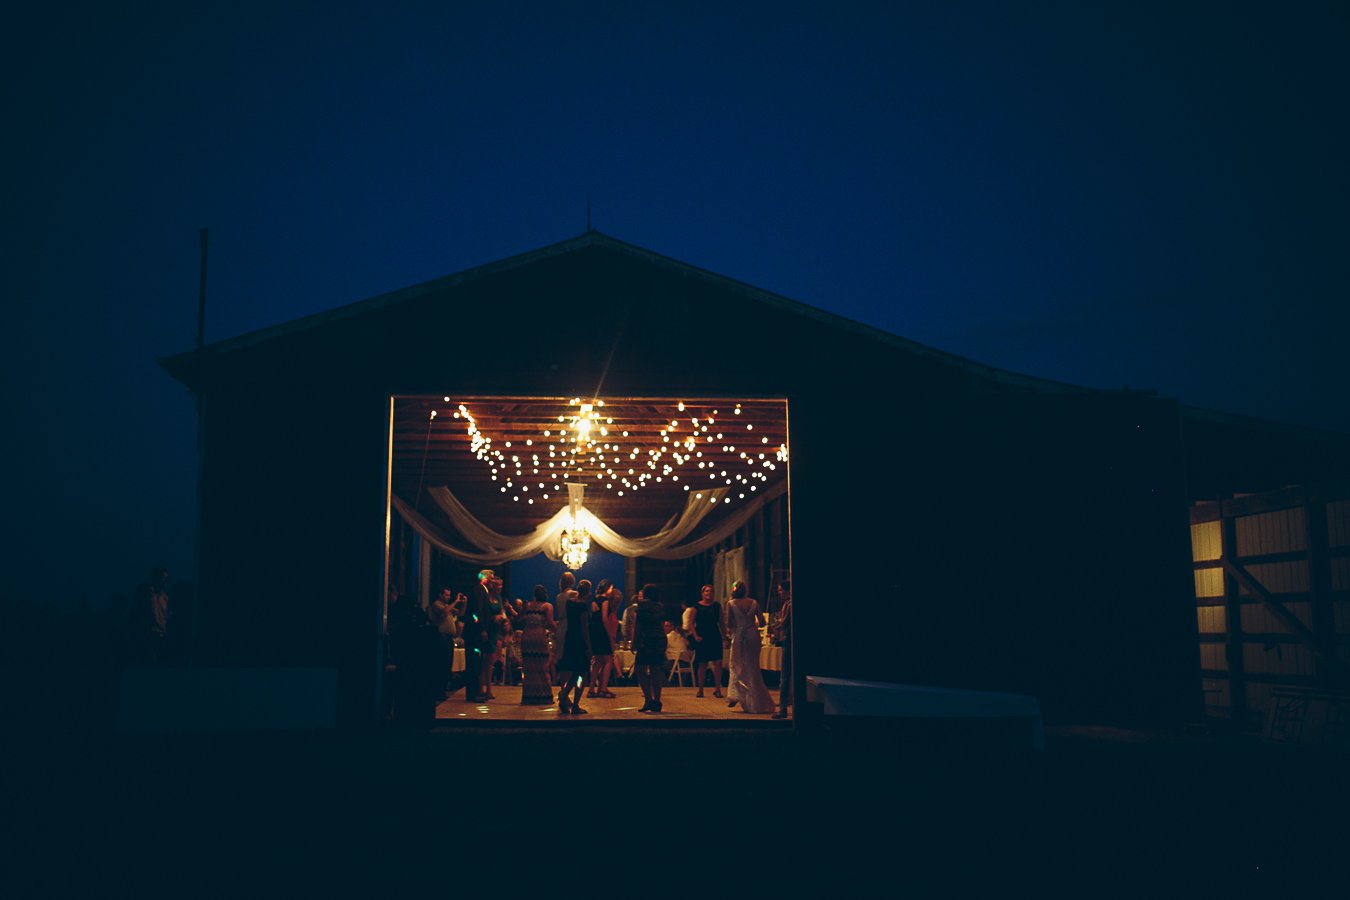 wedding venue. Barn at night with lights inside